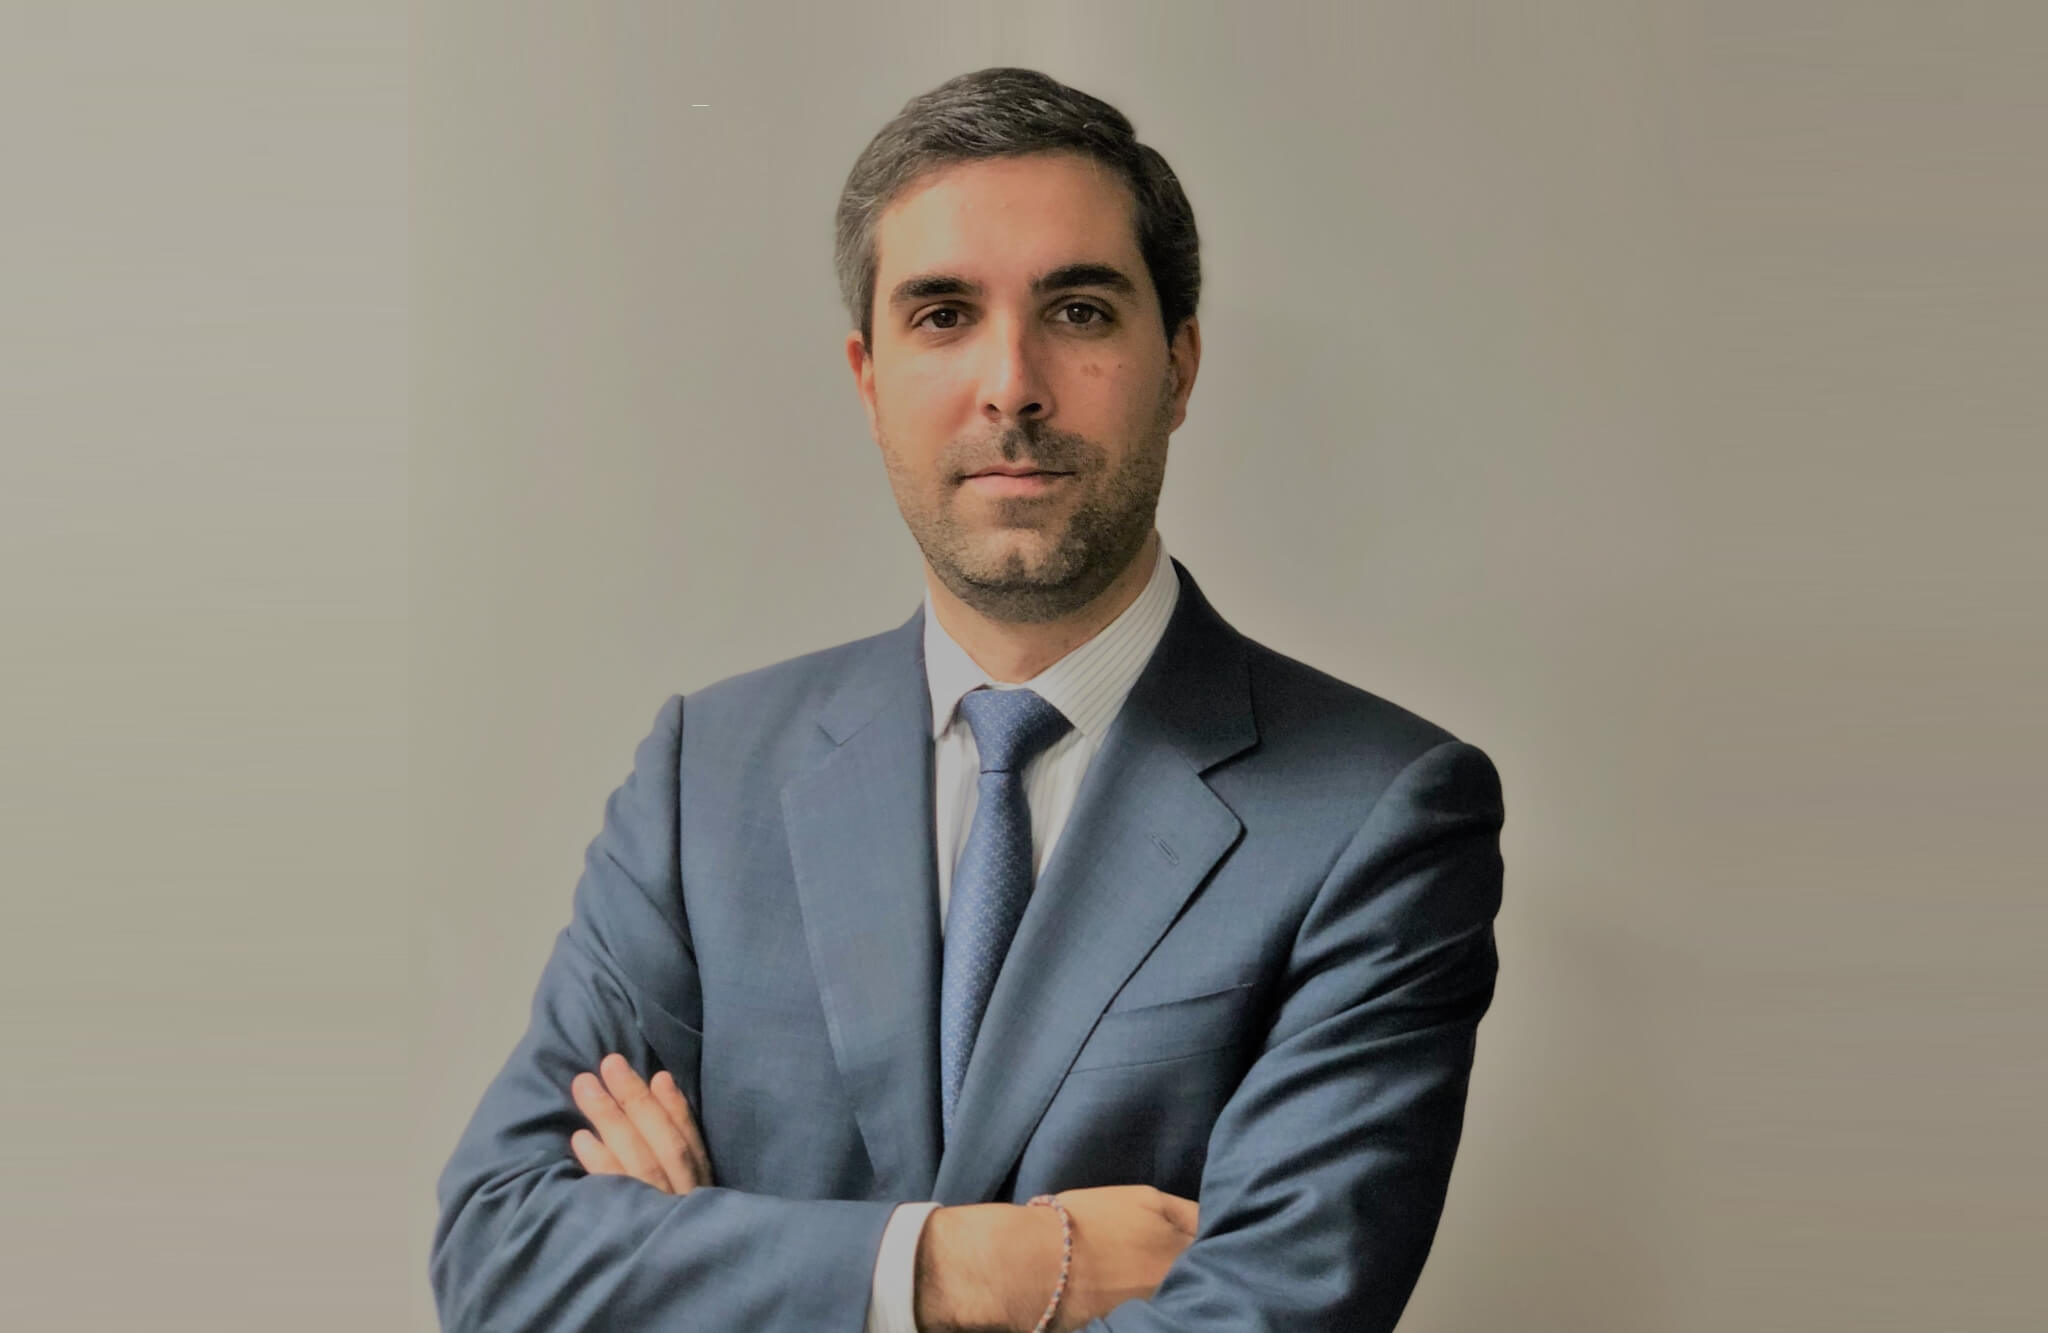 Alvaro de Pablo, Corporate Director